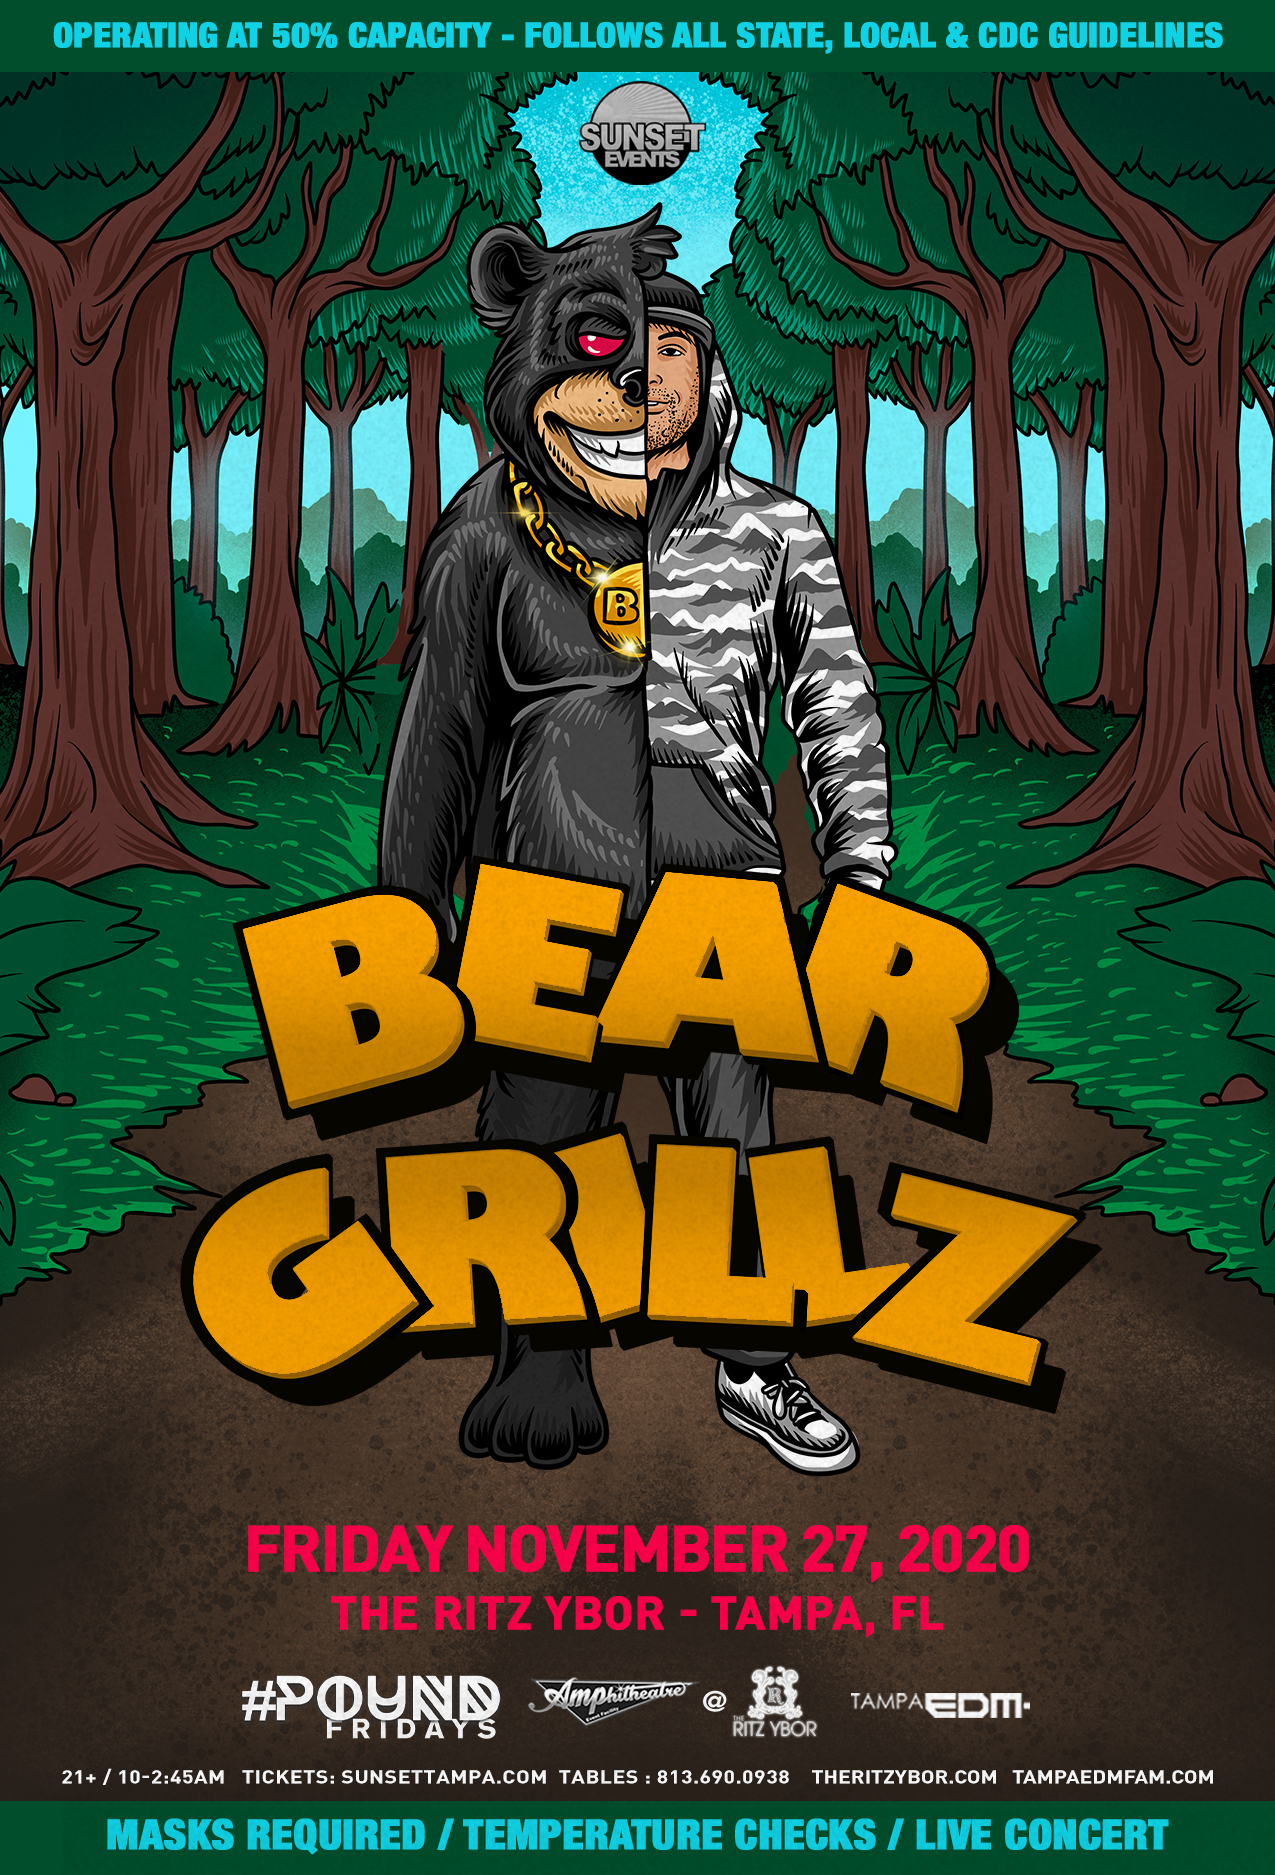 Bear Grillz for #POUND Fridays at The RITZ Ybor – 11/27/2020